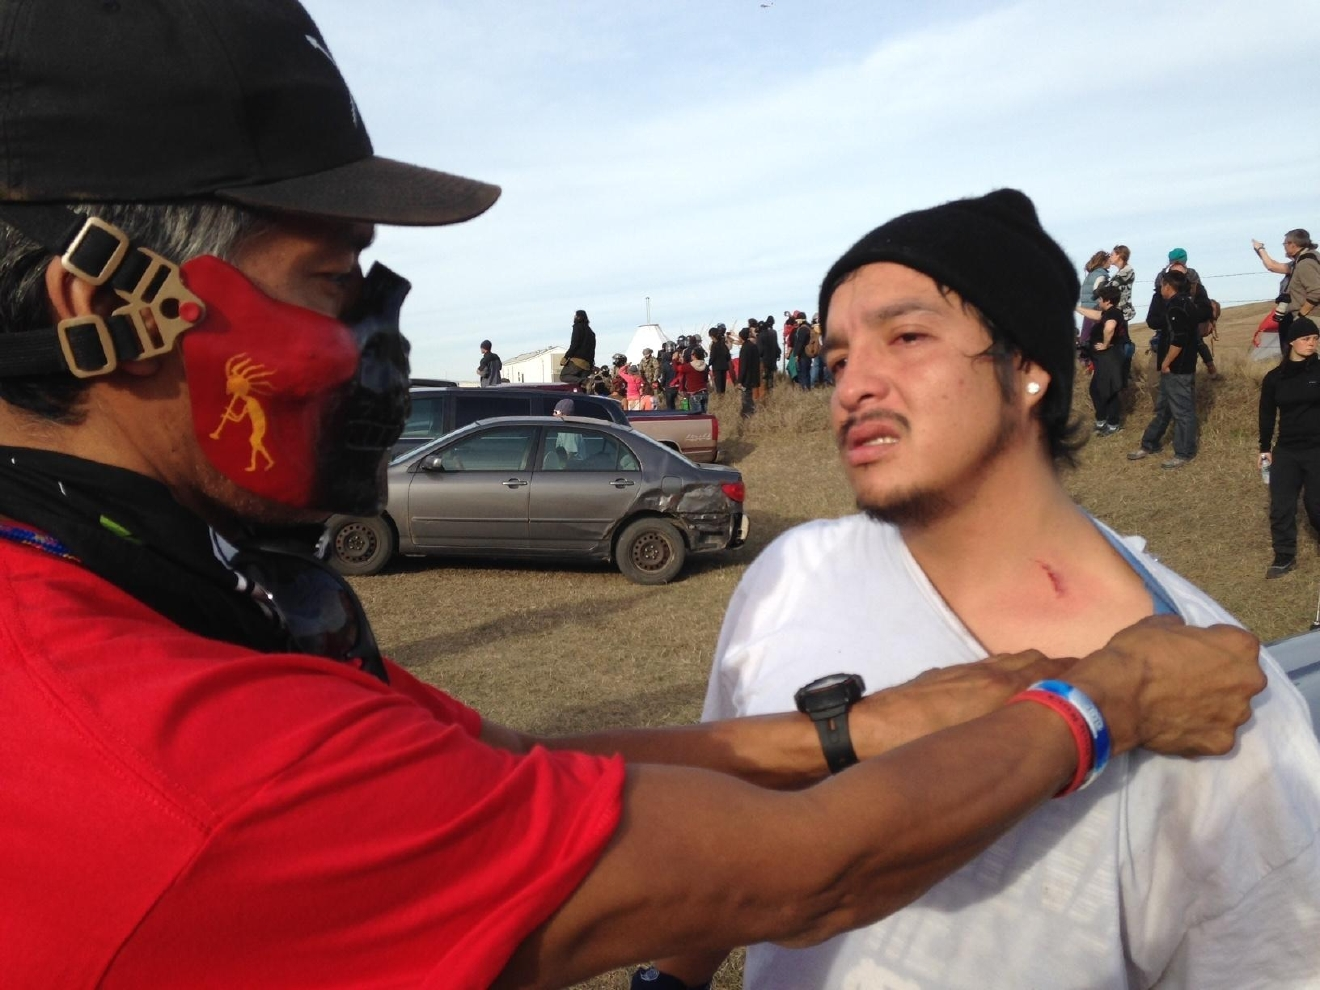 A Dakota Access oil pipeline protester shows where he was hit by a shotgun bean bag round fired by officers trying to force protesters from a camp on private land in the path of pipeline construction, Thursday, Oct. 27, 2016. near Cannon Ball, N.D. Authorities say protesters threw rocks at officers and threatened them on horseback. Soldiers and law enforcement officers dressed in riot gear began arresting protesters who had set up a camp on private land to block construction of the Dakota Access oil pipeline. (AP Photo/James MacPherson)